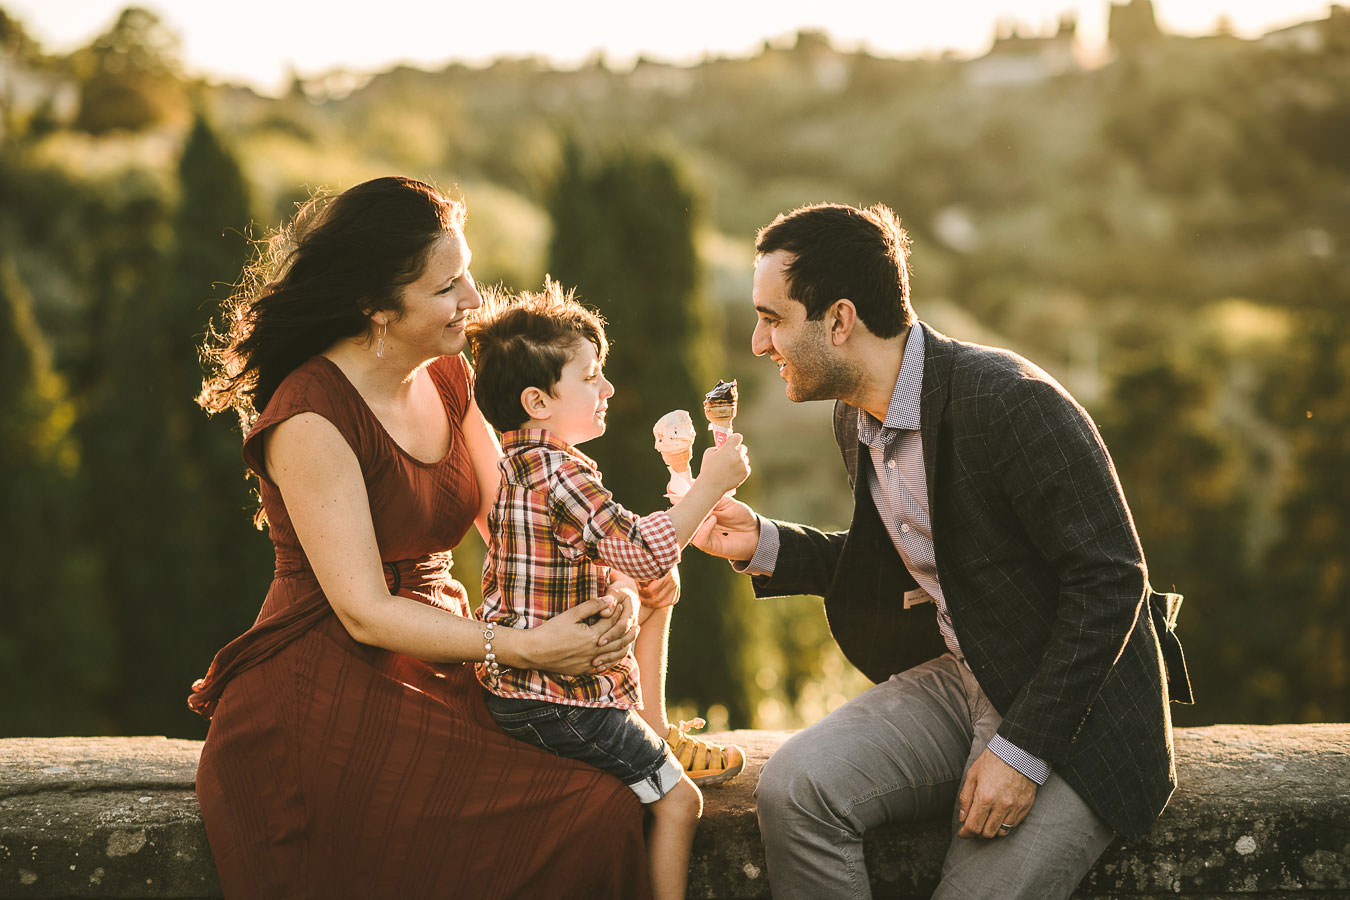 Lovely family photo shoot in Florence near Piazzale Michelangelo